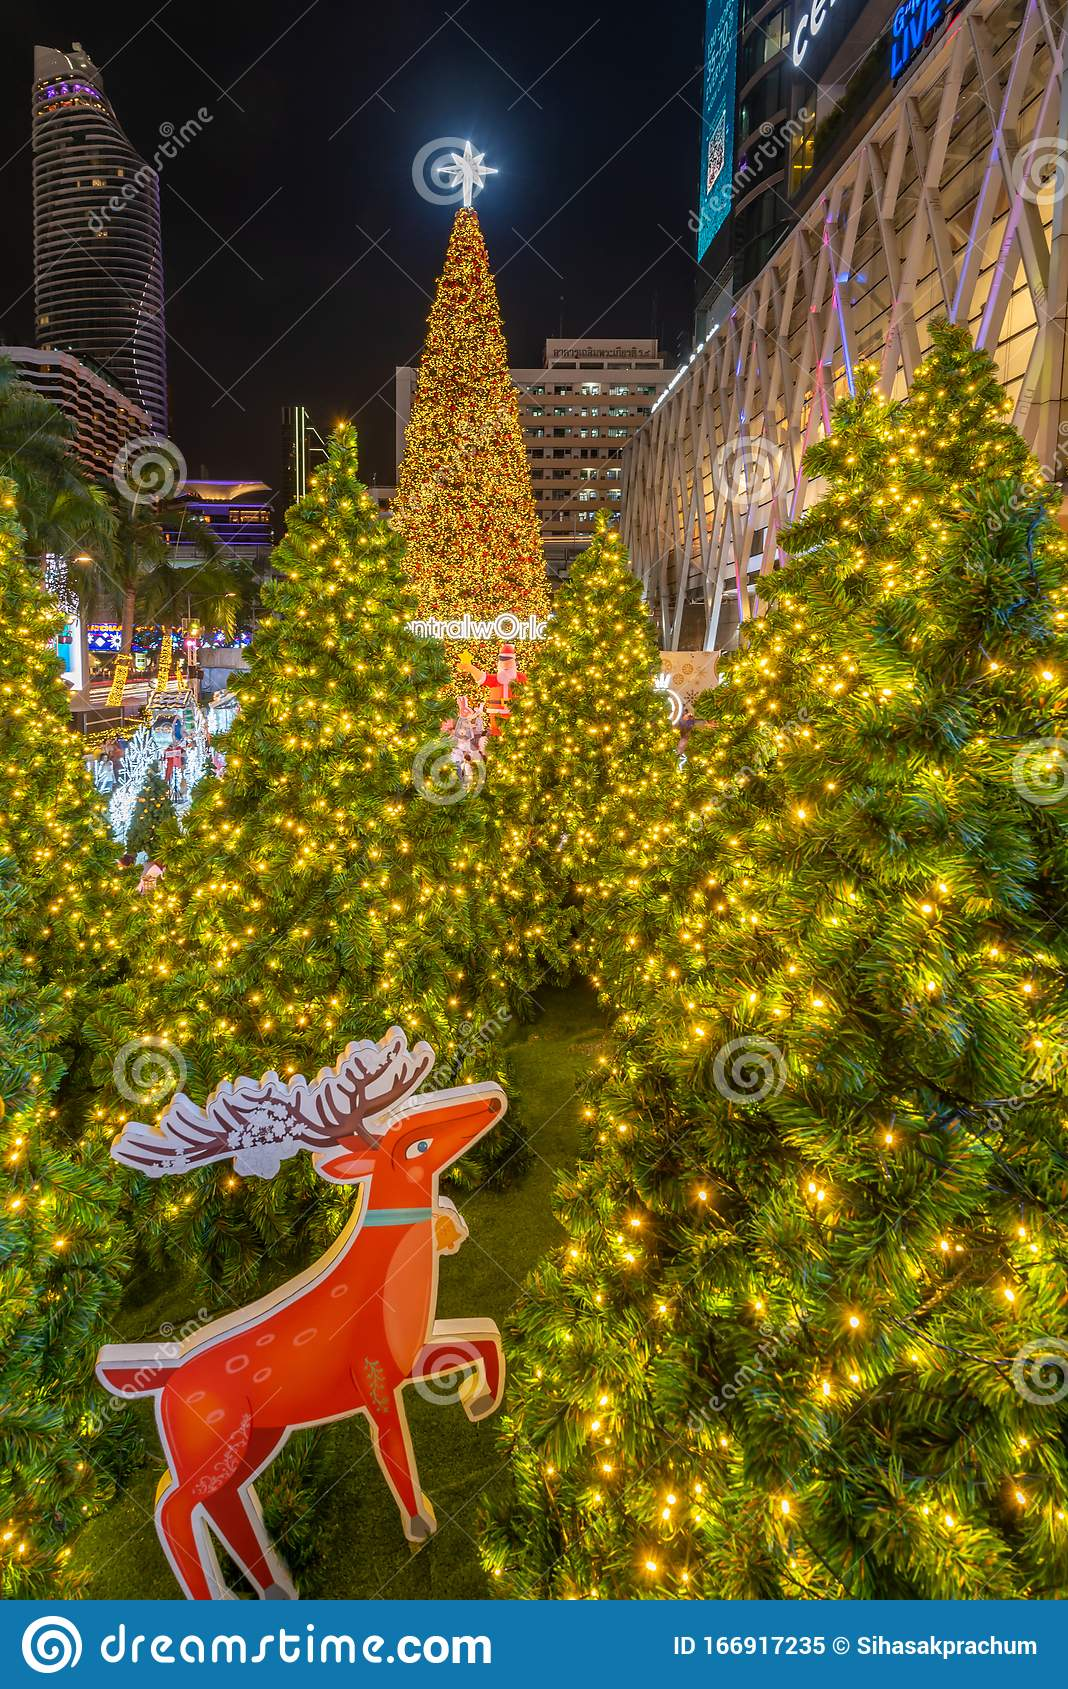 Christmas Celebration 2020 At Central World Christmas Day And Happy New Year Event In Bangkok Editorial Image Image Of Background Light 166917235